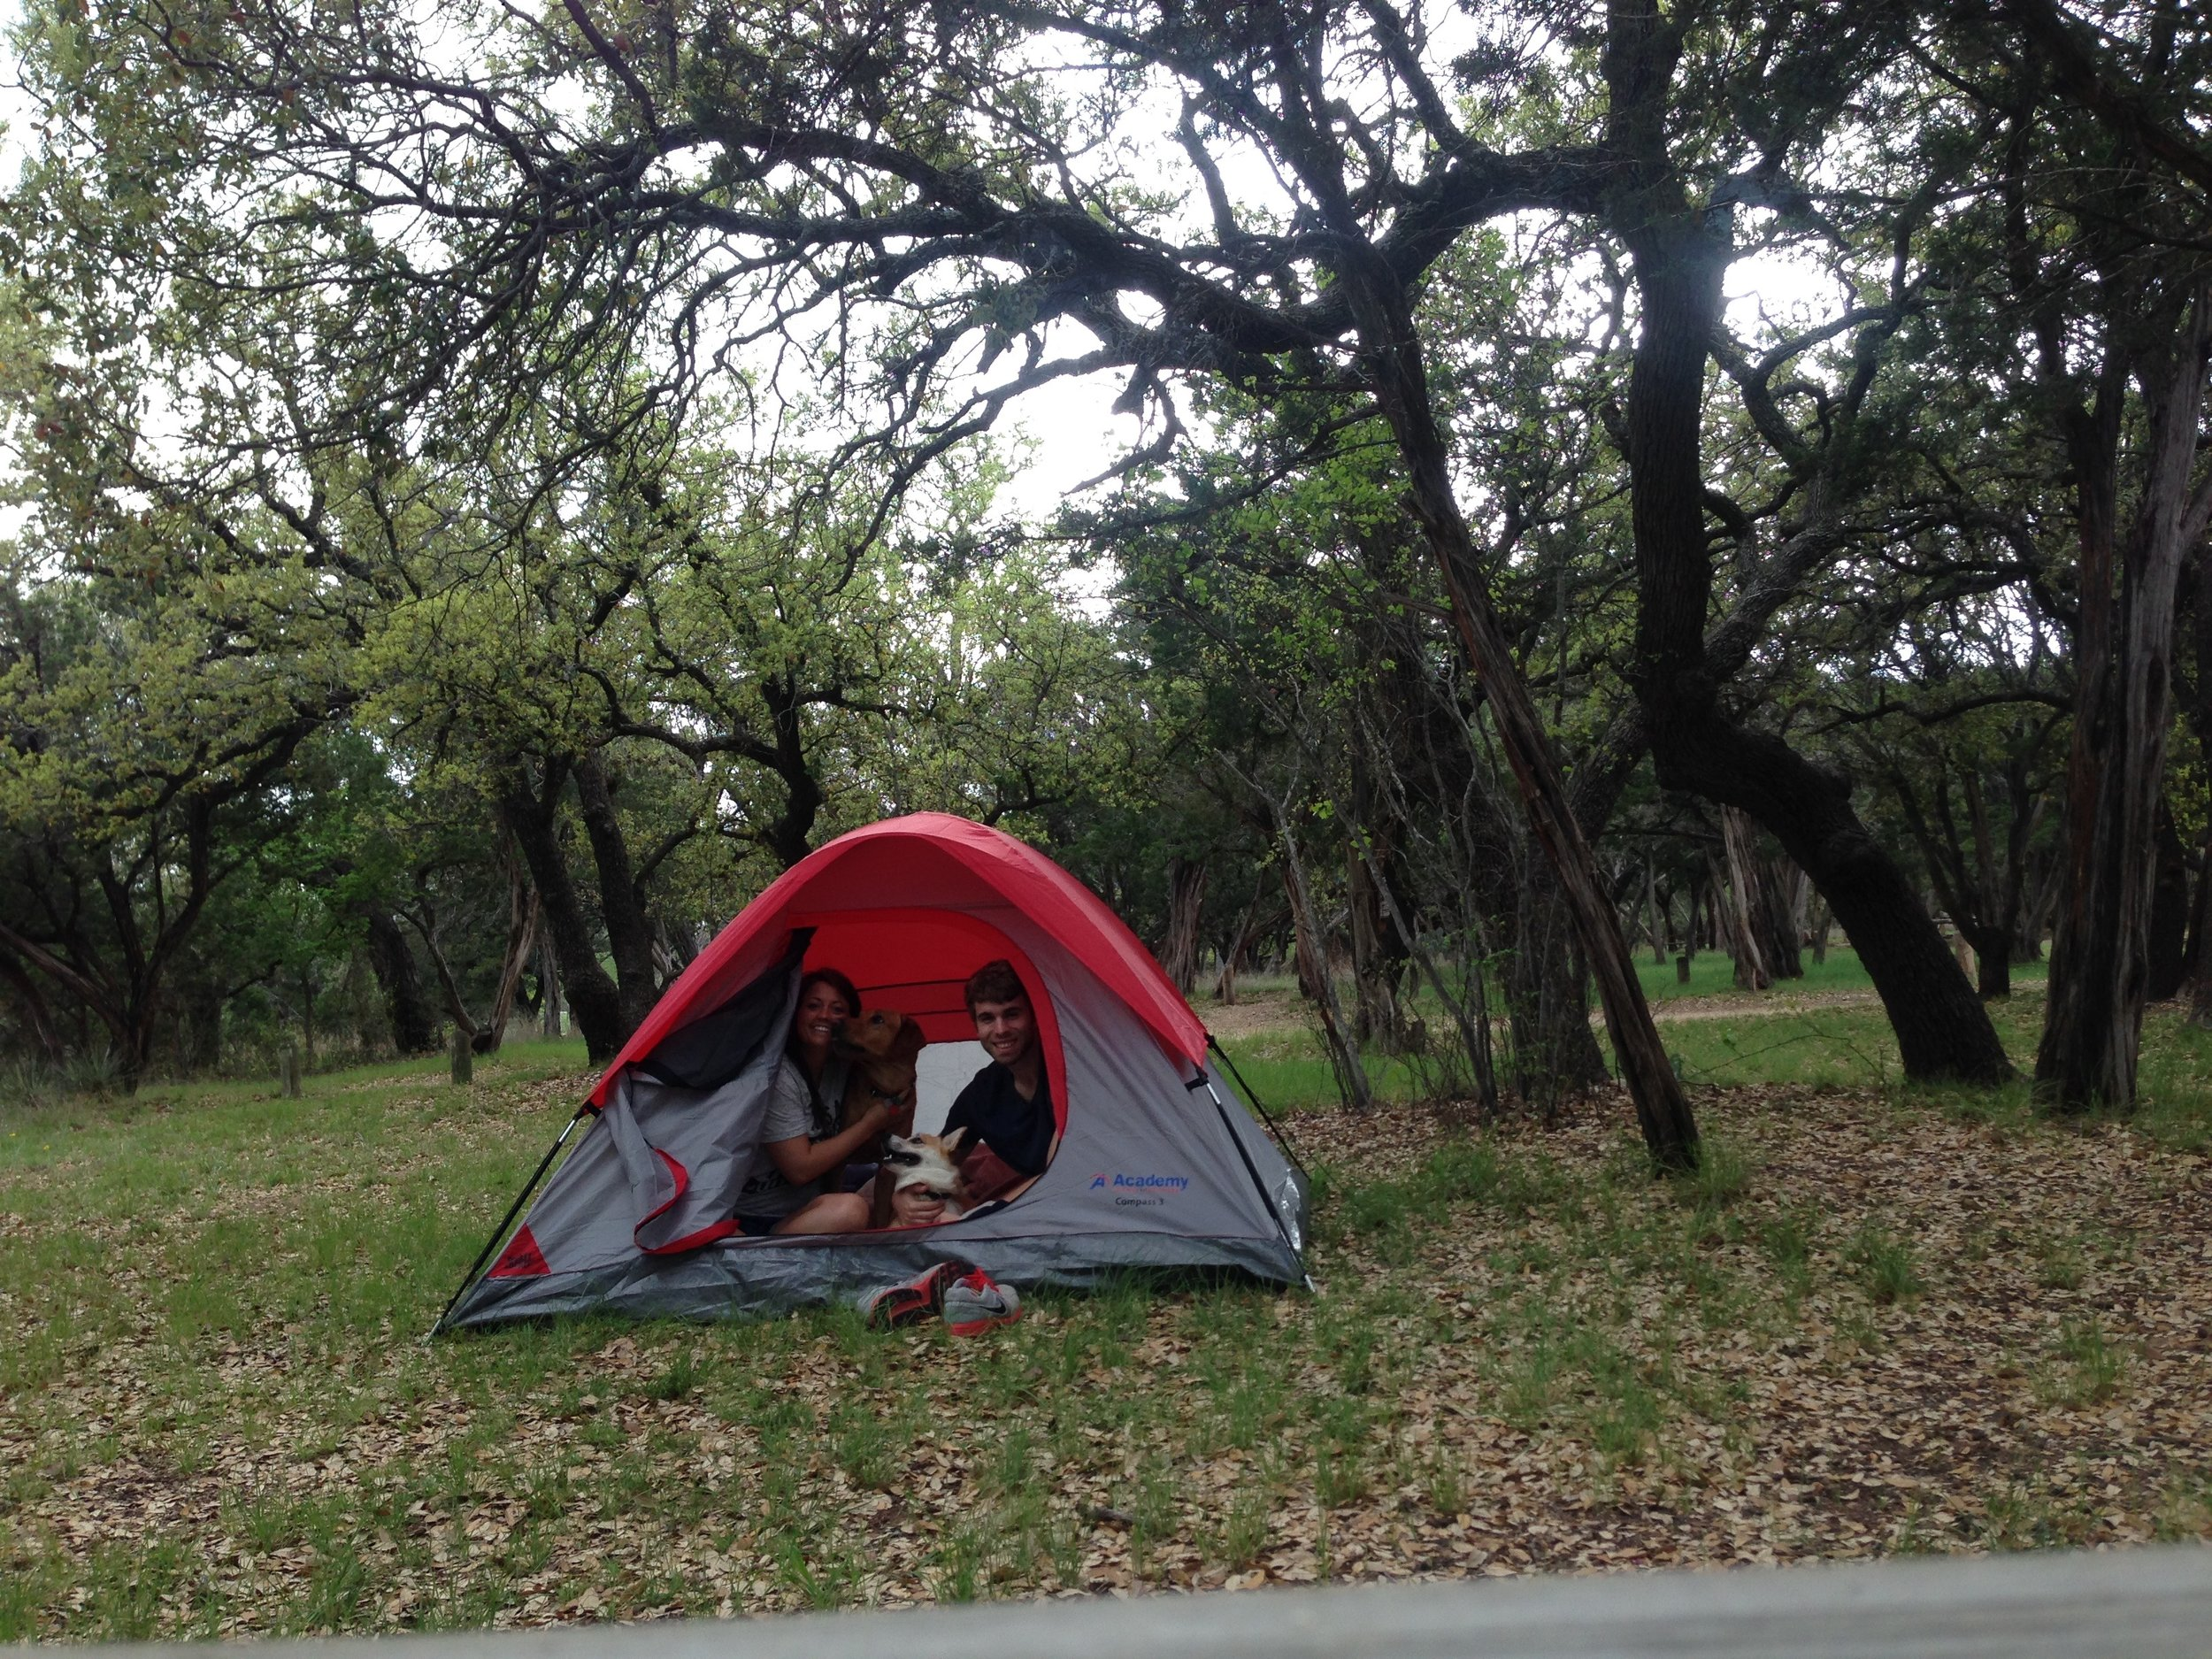 Camping in Abiline State Park during Joel's first contract in 2015.